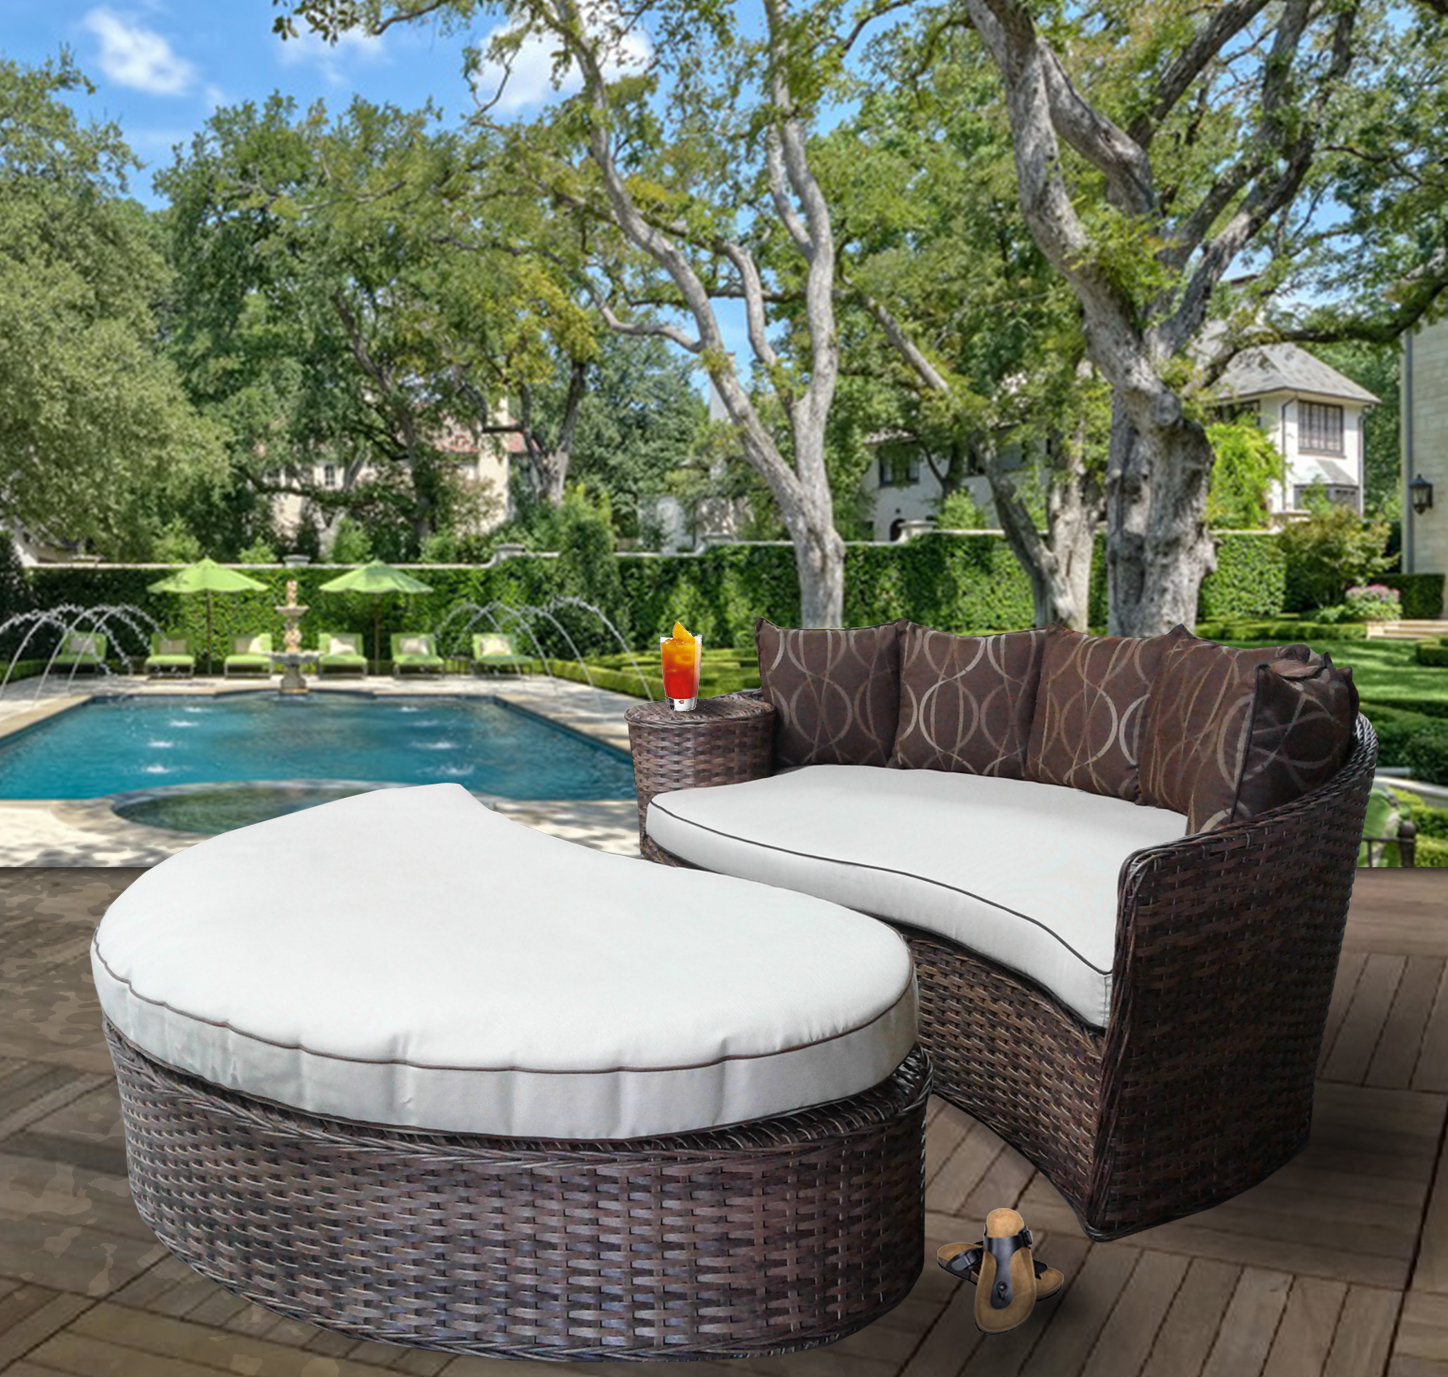 Duran Deluxe Patio Daybed With Cushions With Regard To Fashionable Keiran Patio Daybeds With Cushions (View 15 of 20)